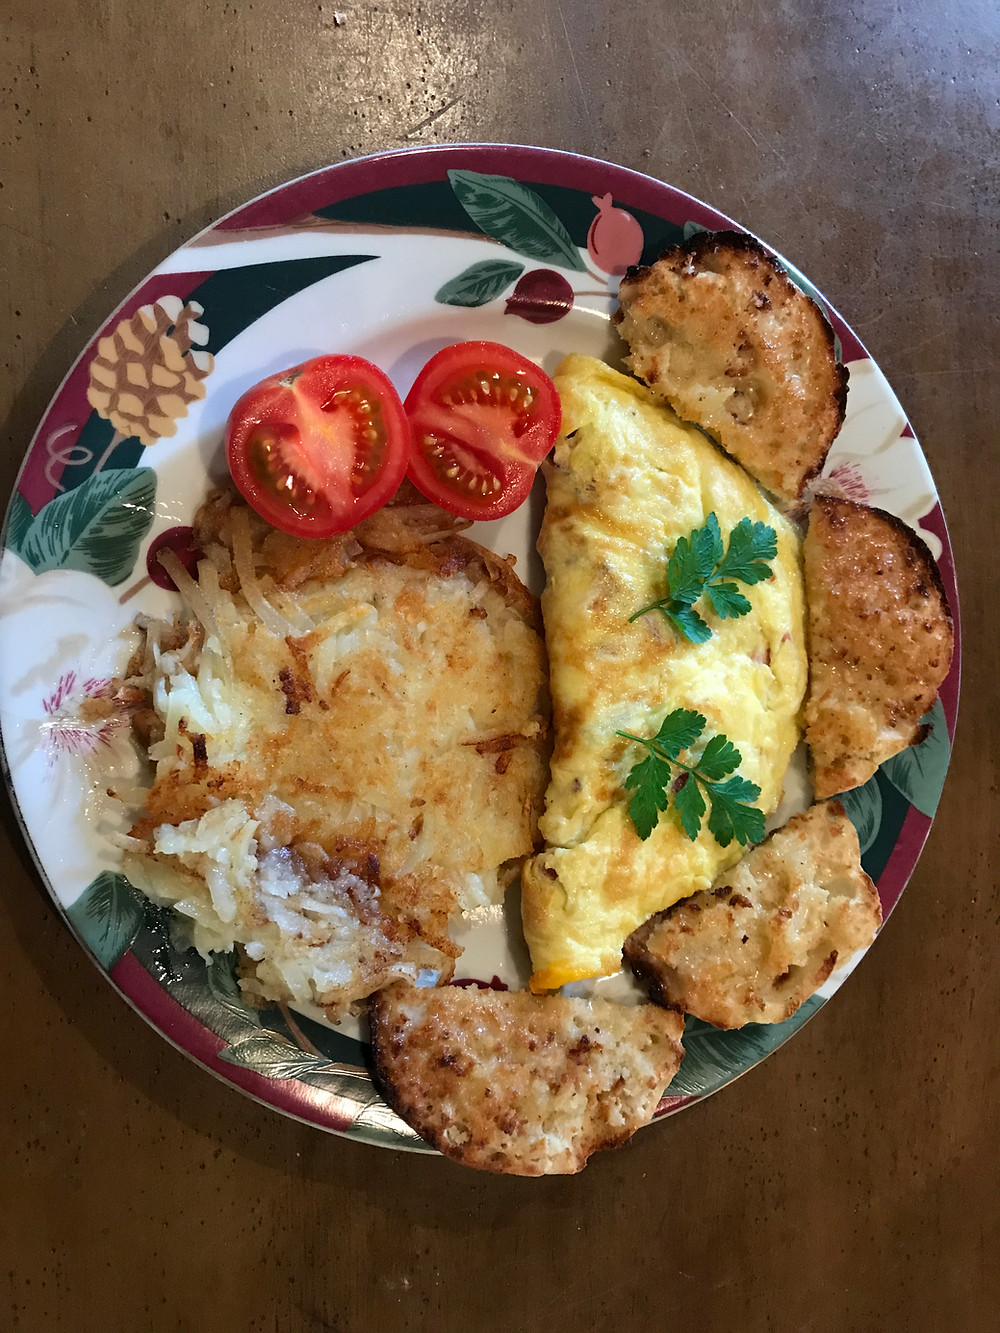 Breakfast - Omelette, Hashbrowns and English Muffins